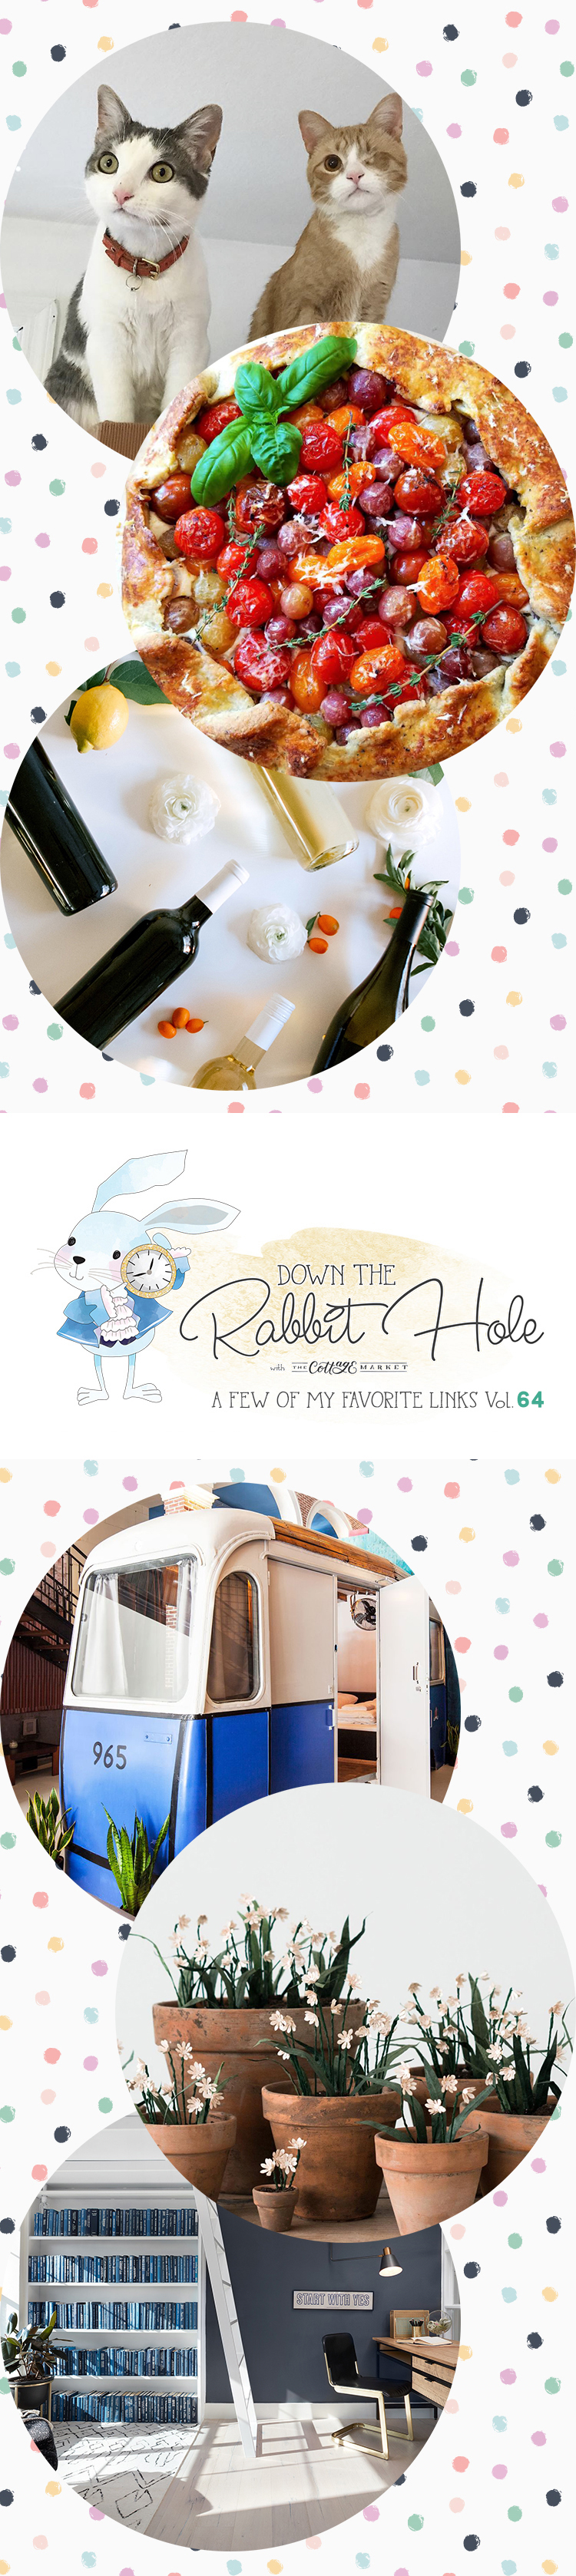 Down the Rabbit Hole // Where Cool Links & Pet Charity Meet!!!!!!